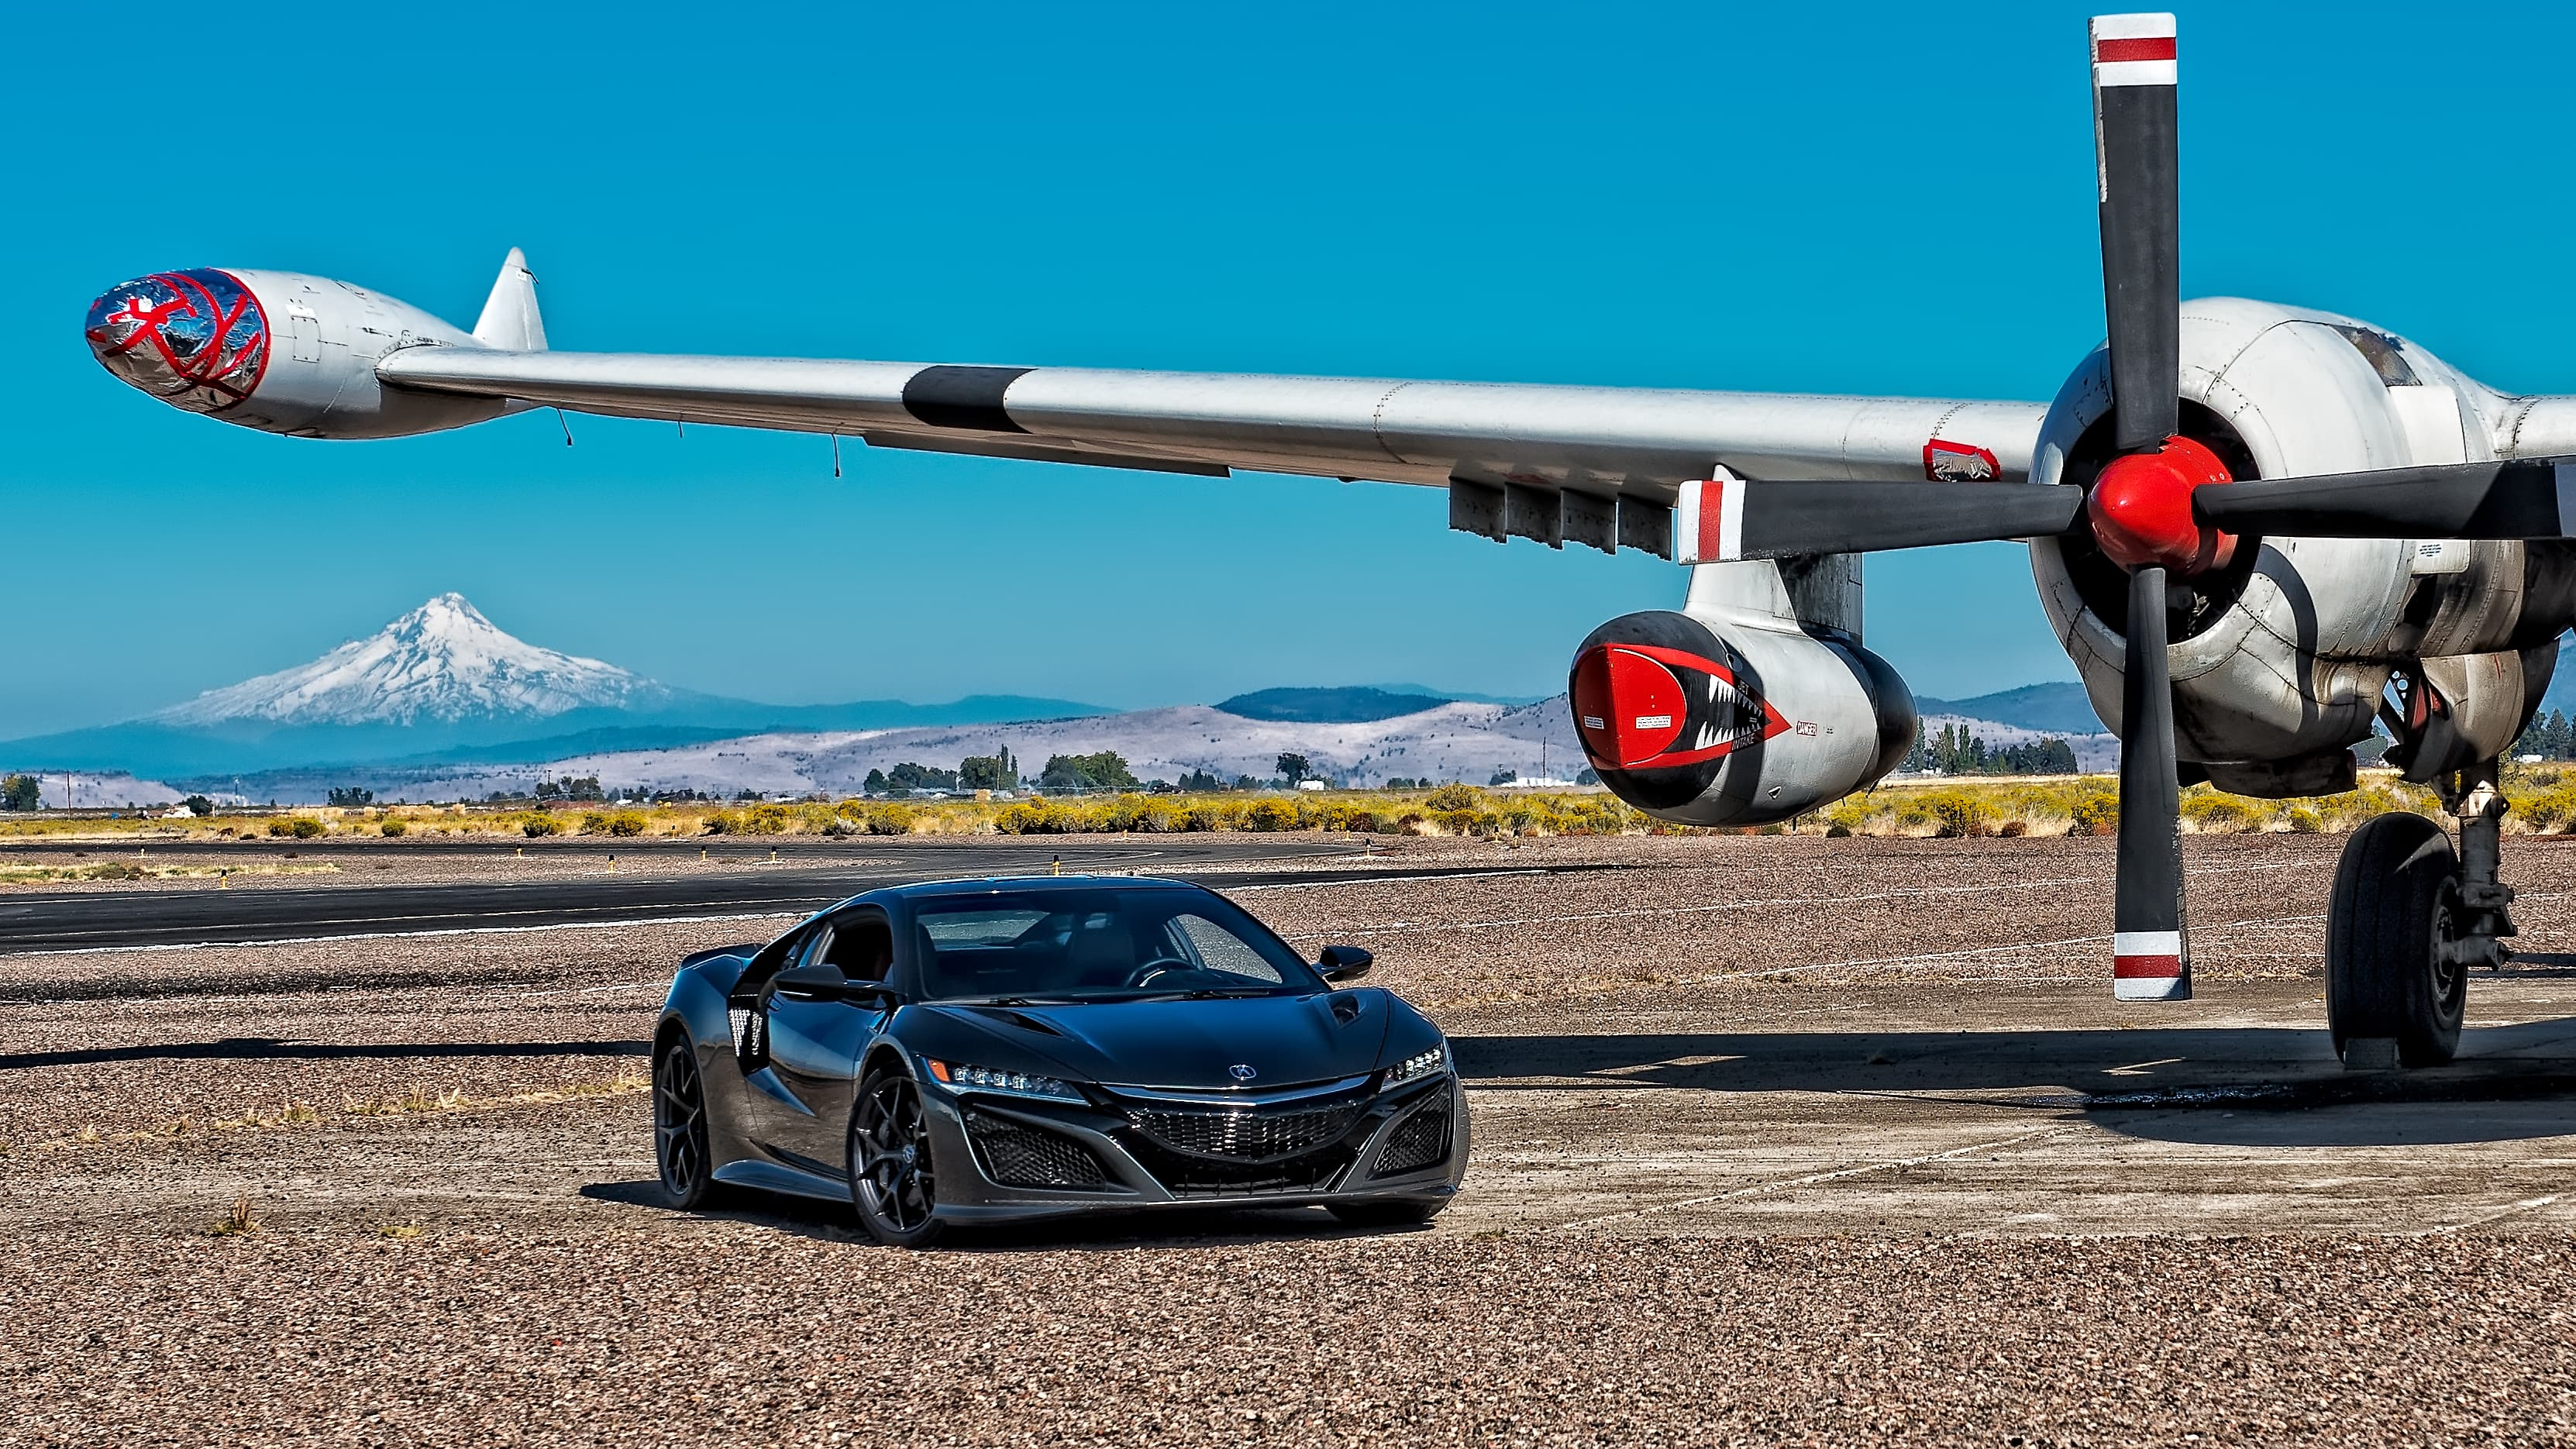 2017 black Acura NSX under a wing of a airсraft